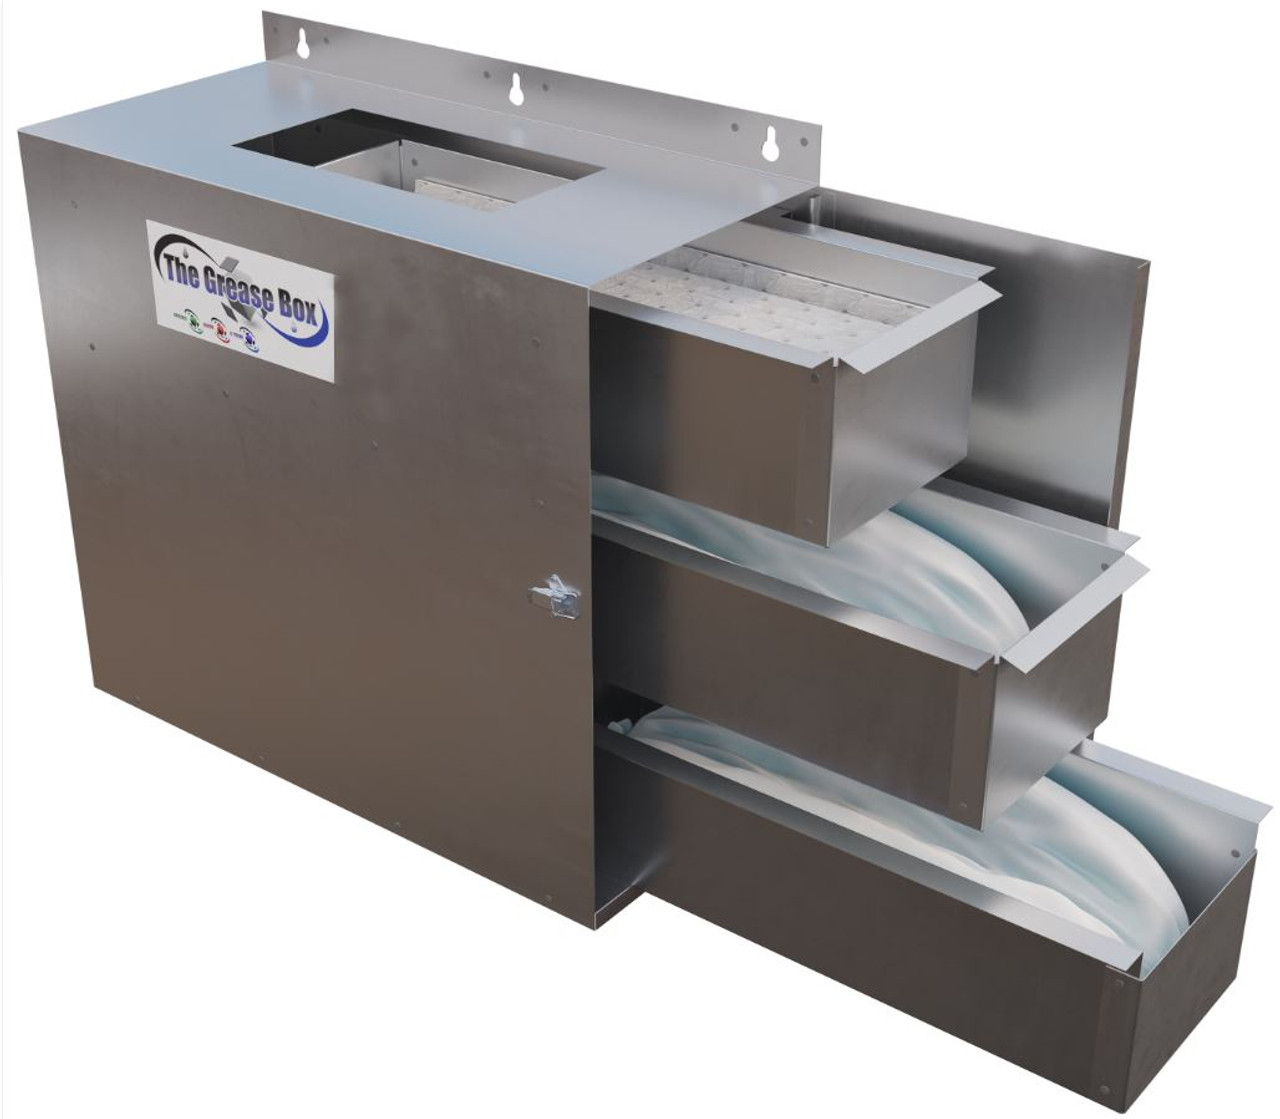 Grease Box (Enclosed protection to protect the rooftop from grease)